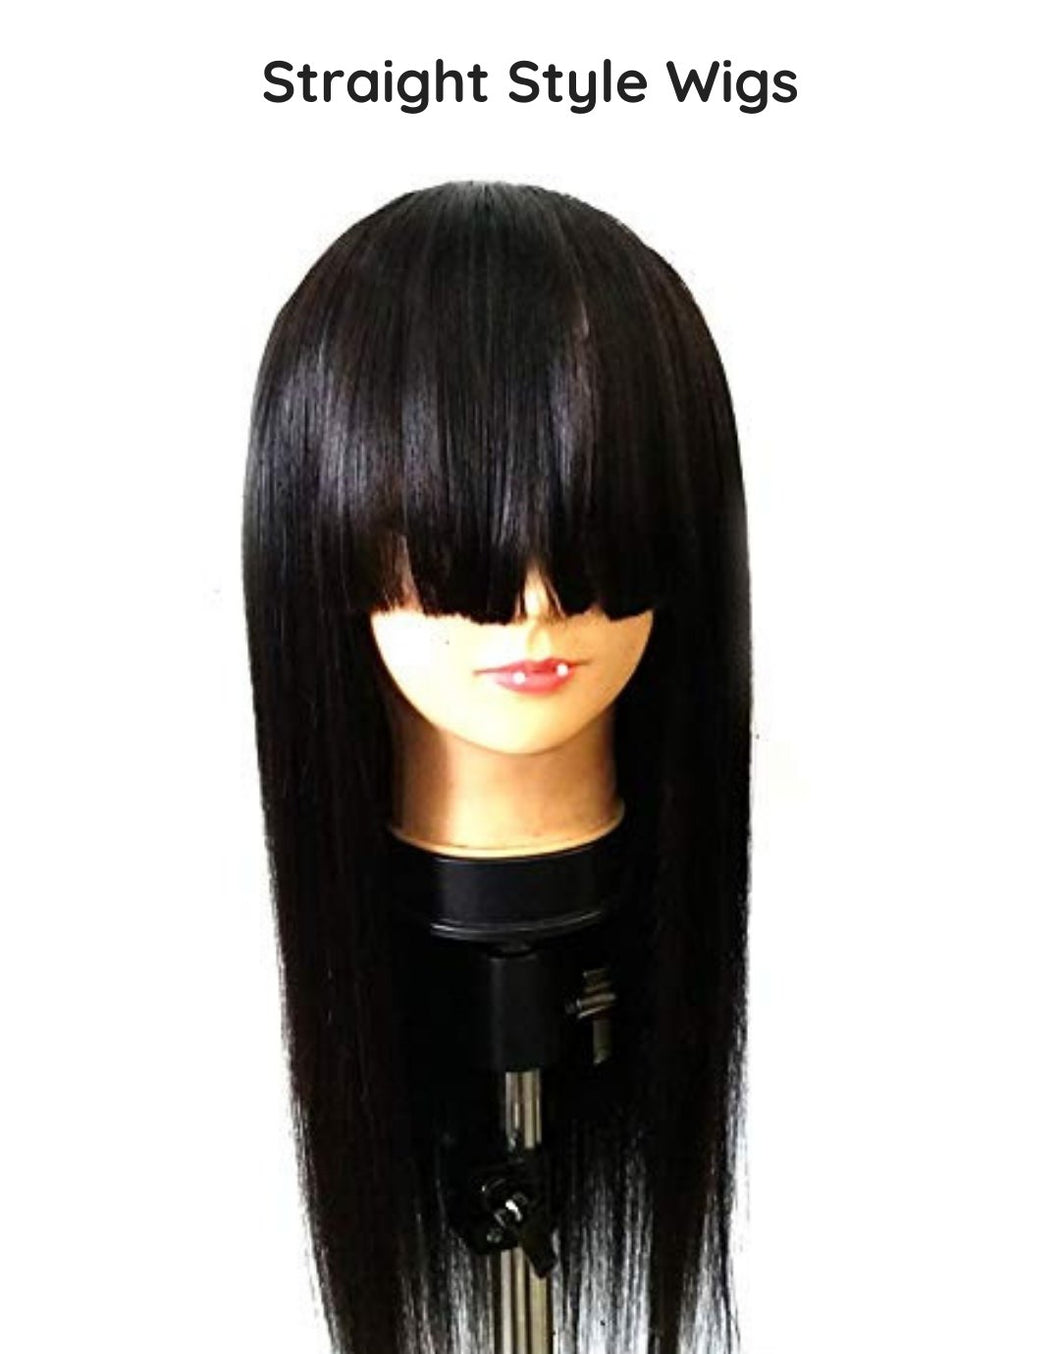 Custom Straight Style Wigs - Healthy Hair Clinic